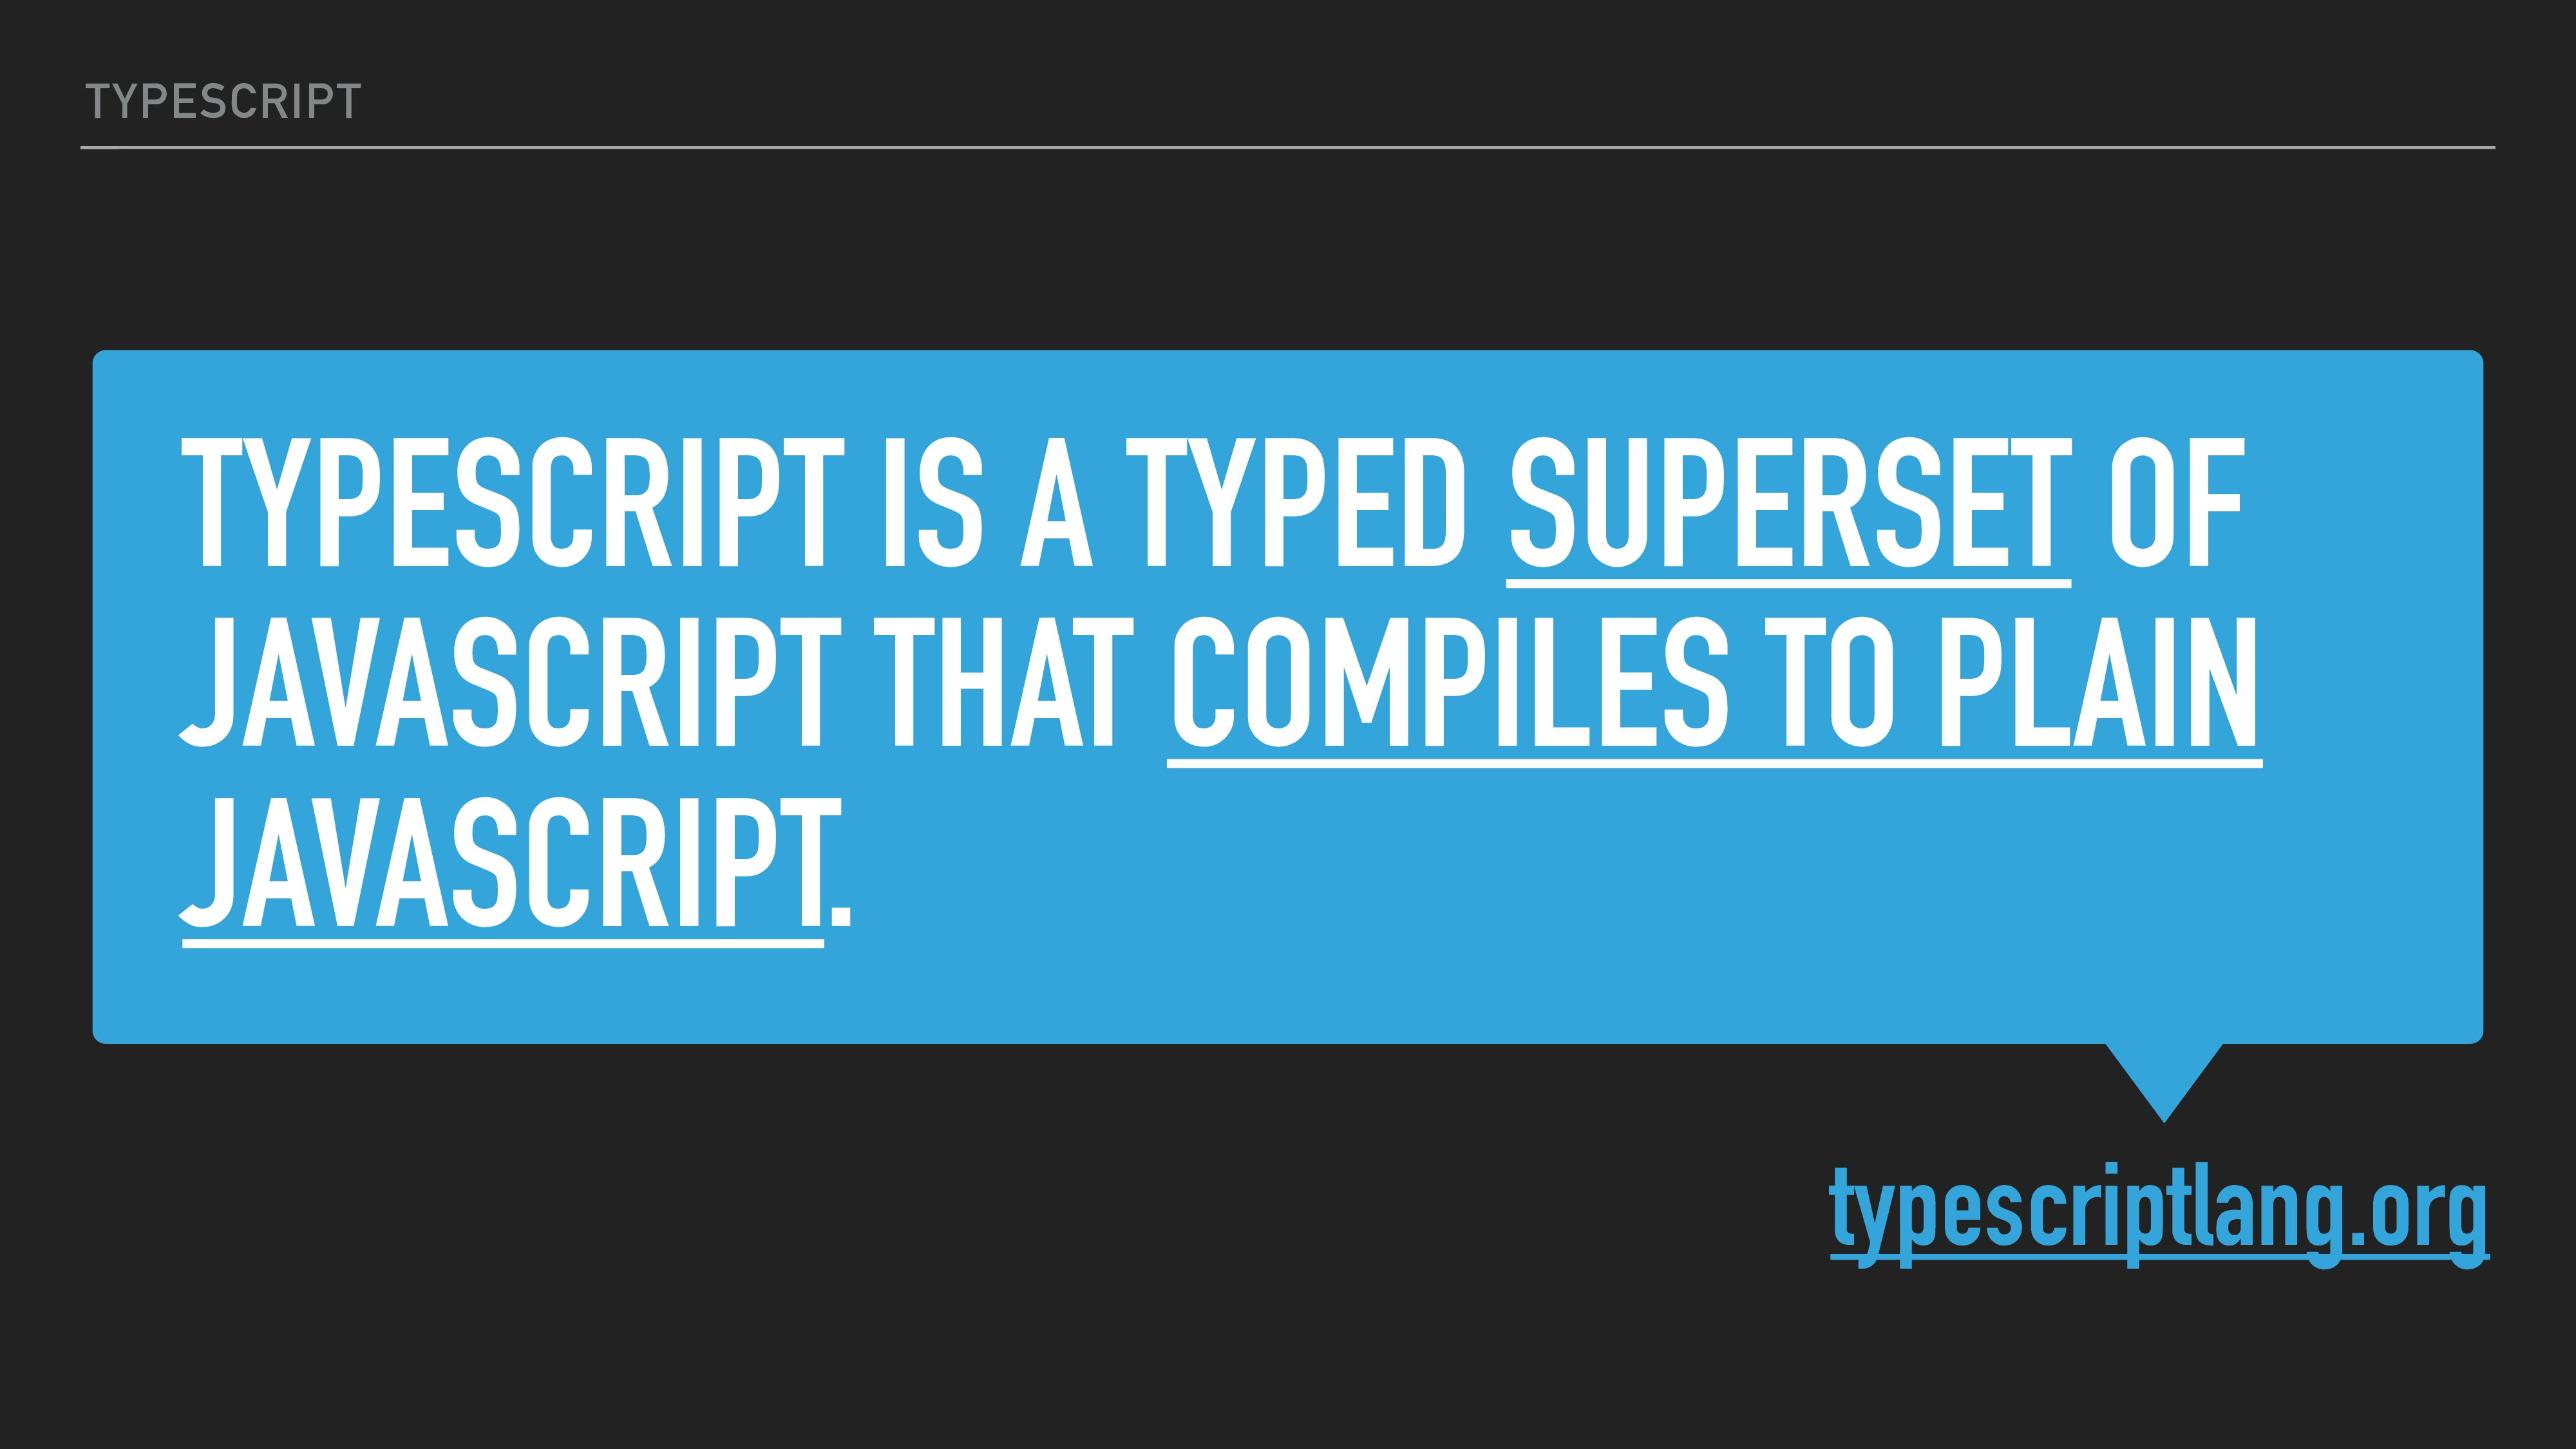 TYPESCRIPT IS A TYPED SUPERSET OF JAVASCRIPT TH...